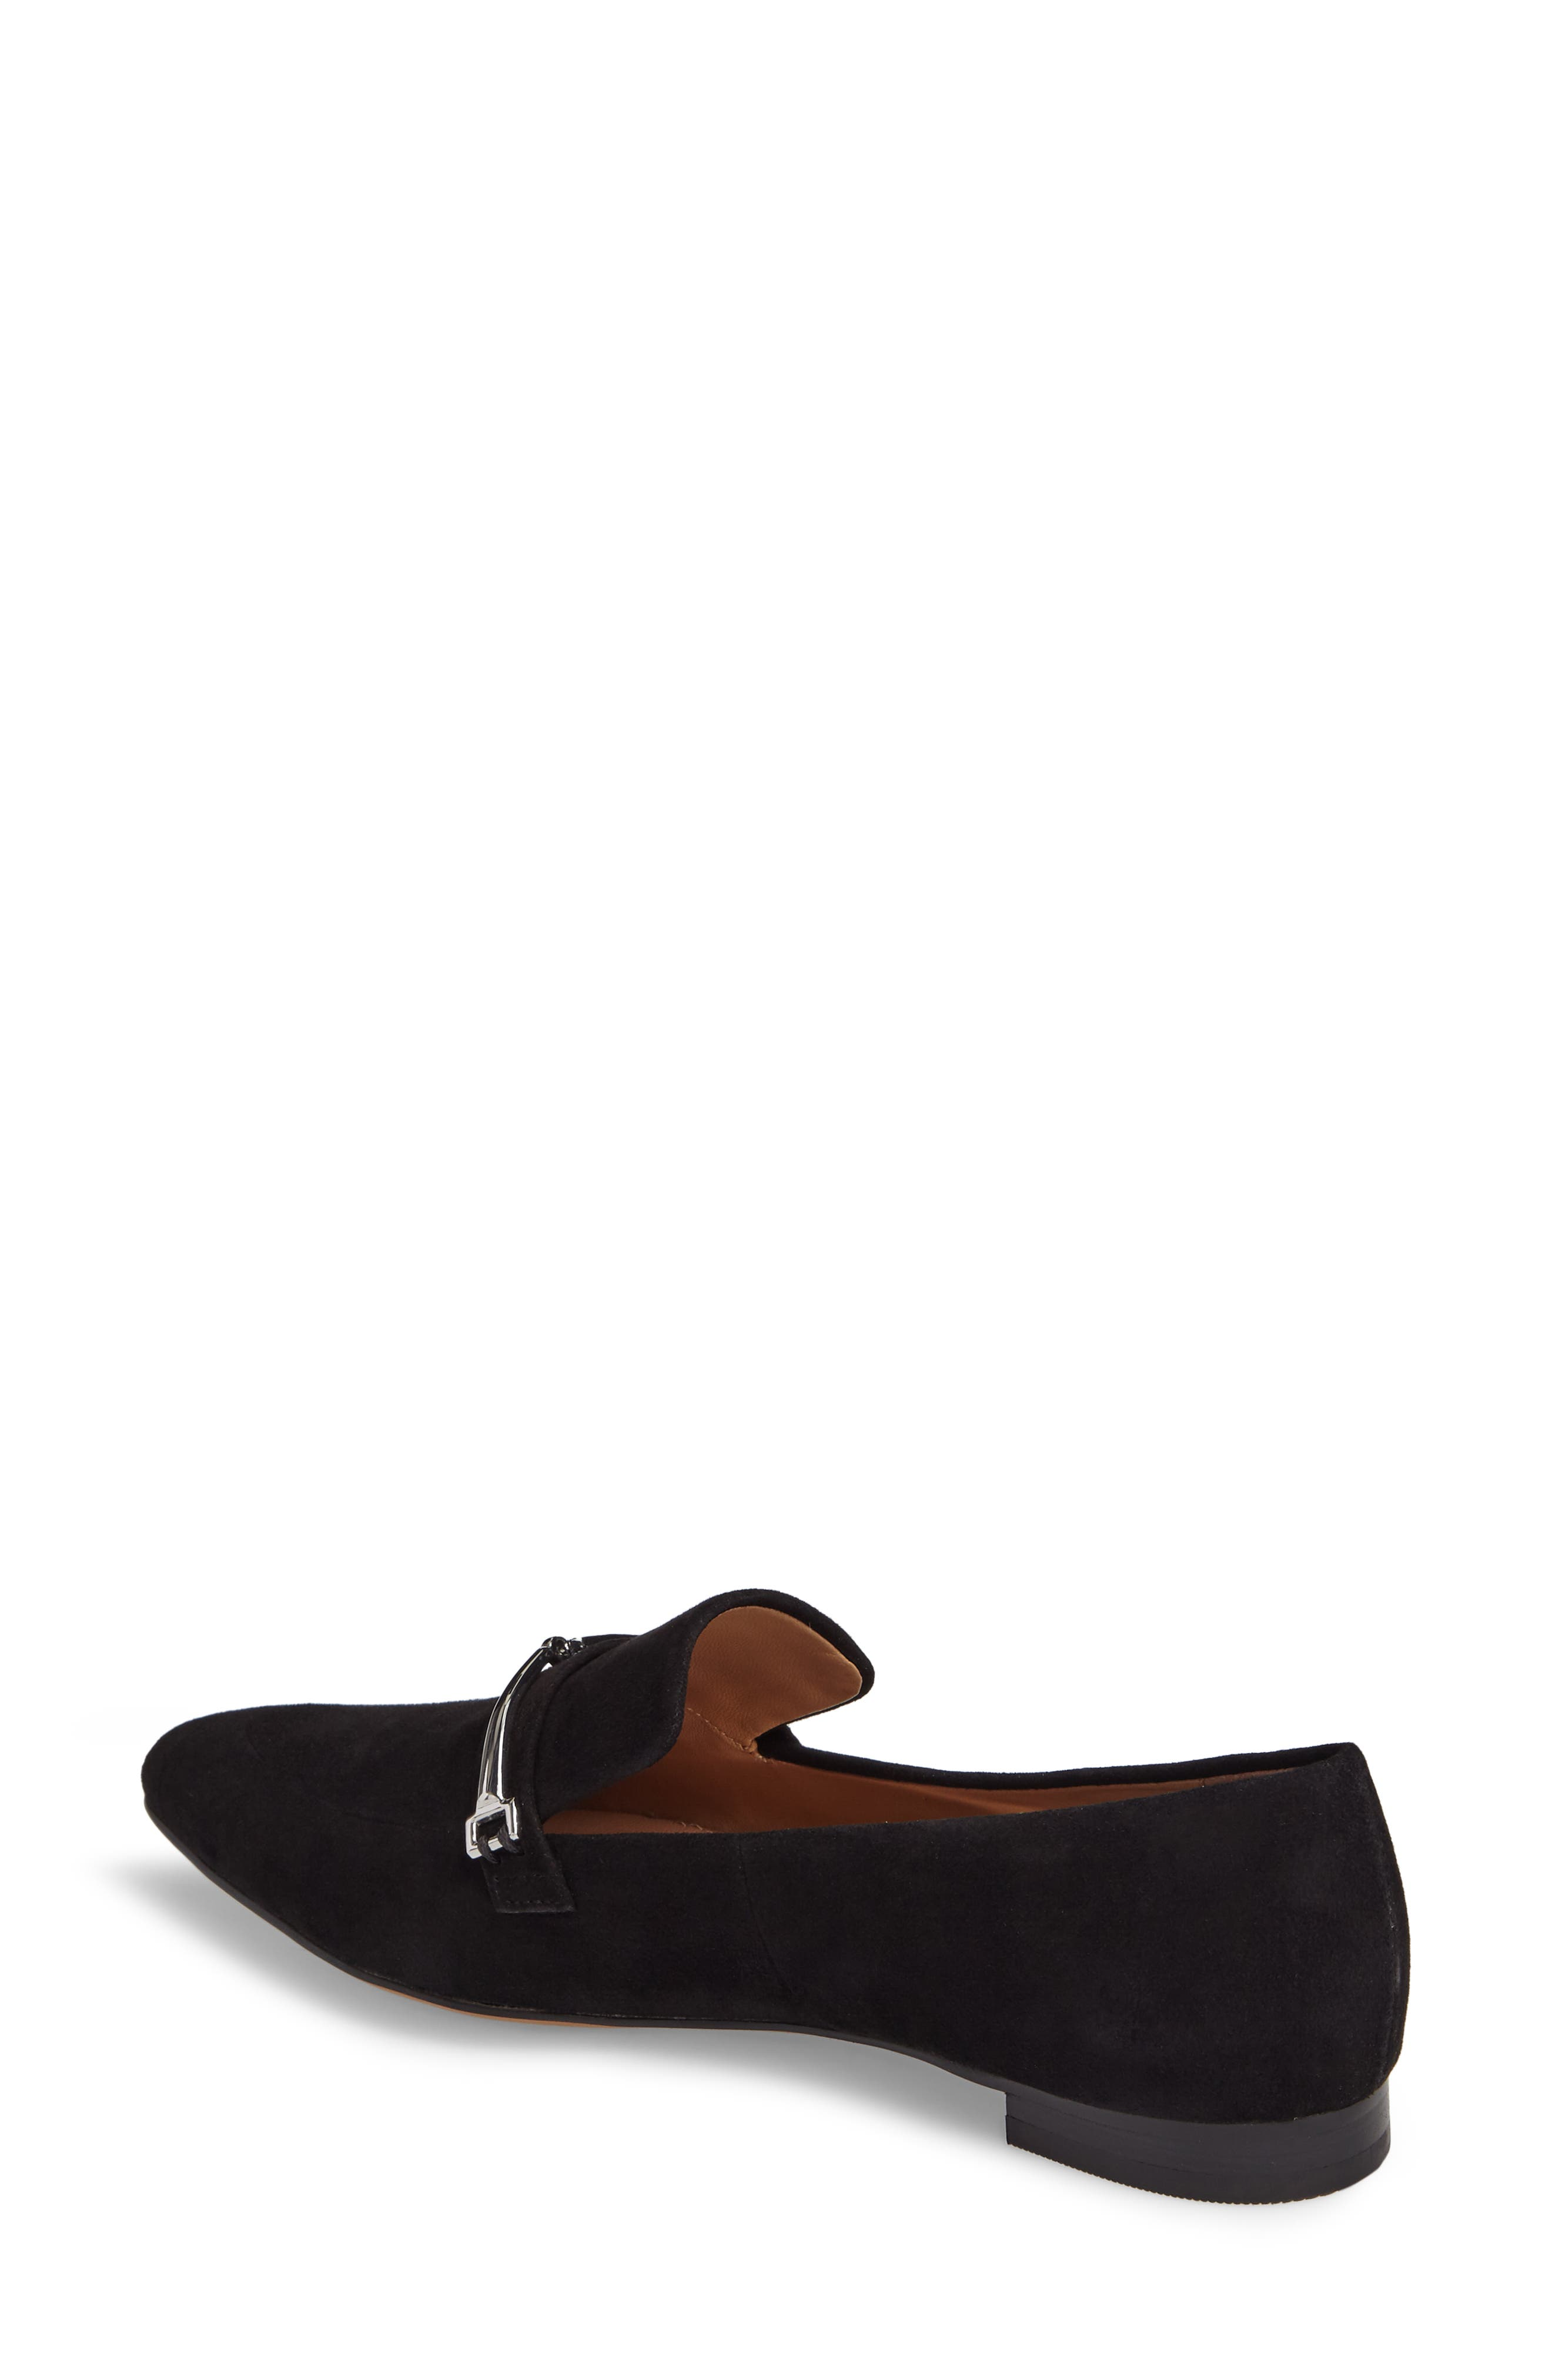 Molly Loafer,                             Alternate thumbnail 2, color,                             Black Suede